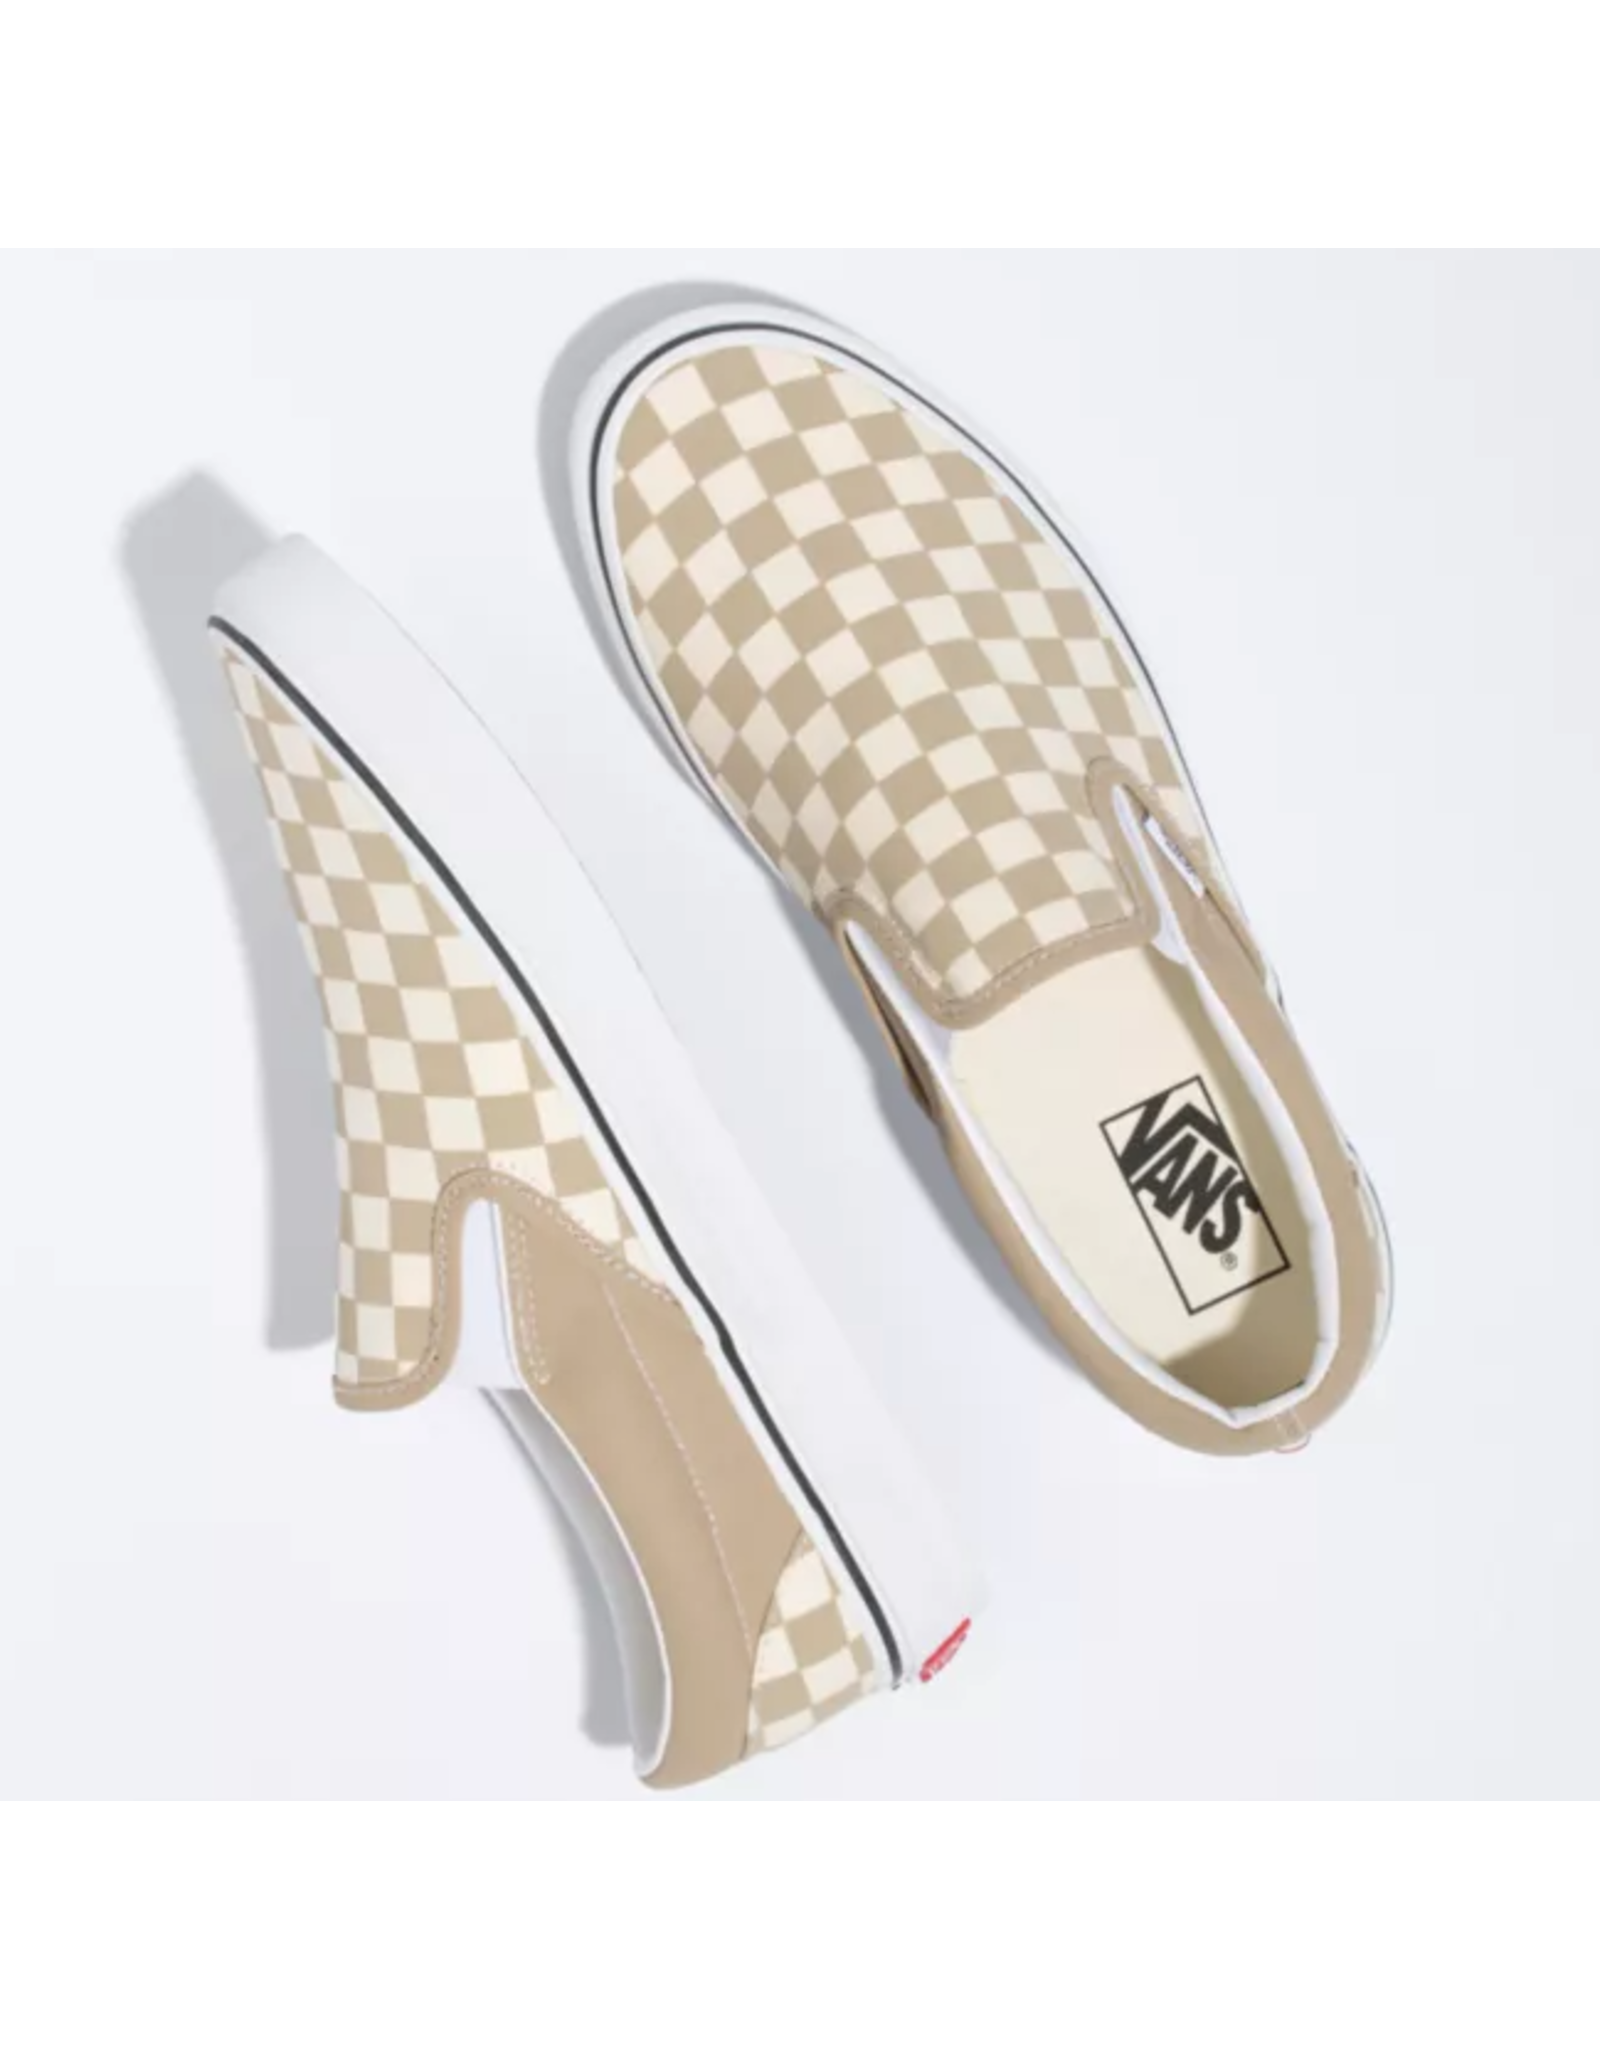 Vans Classic Slip-On - Incense Checkerboard